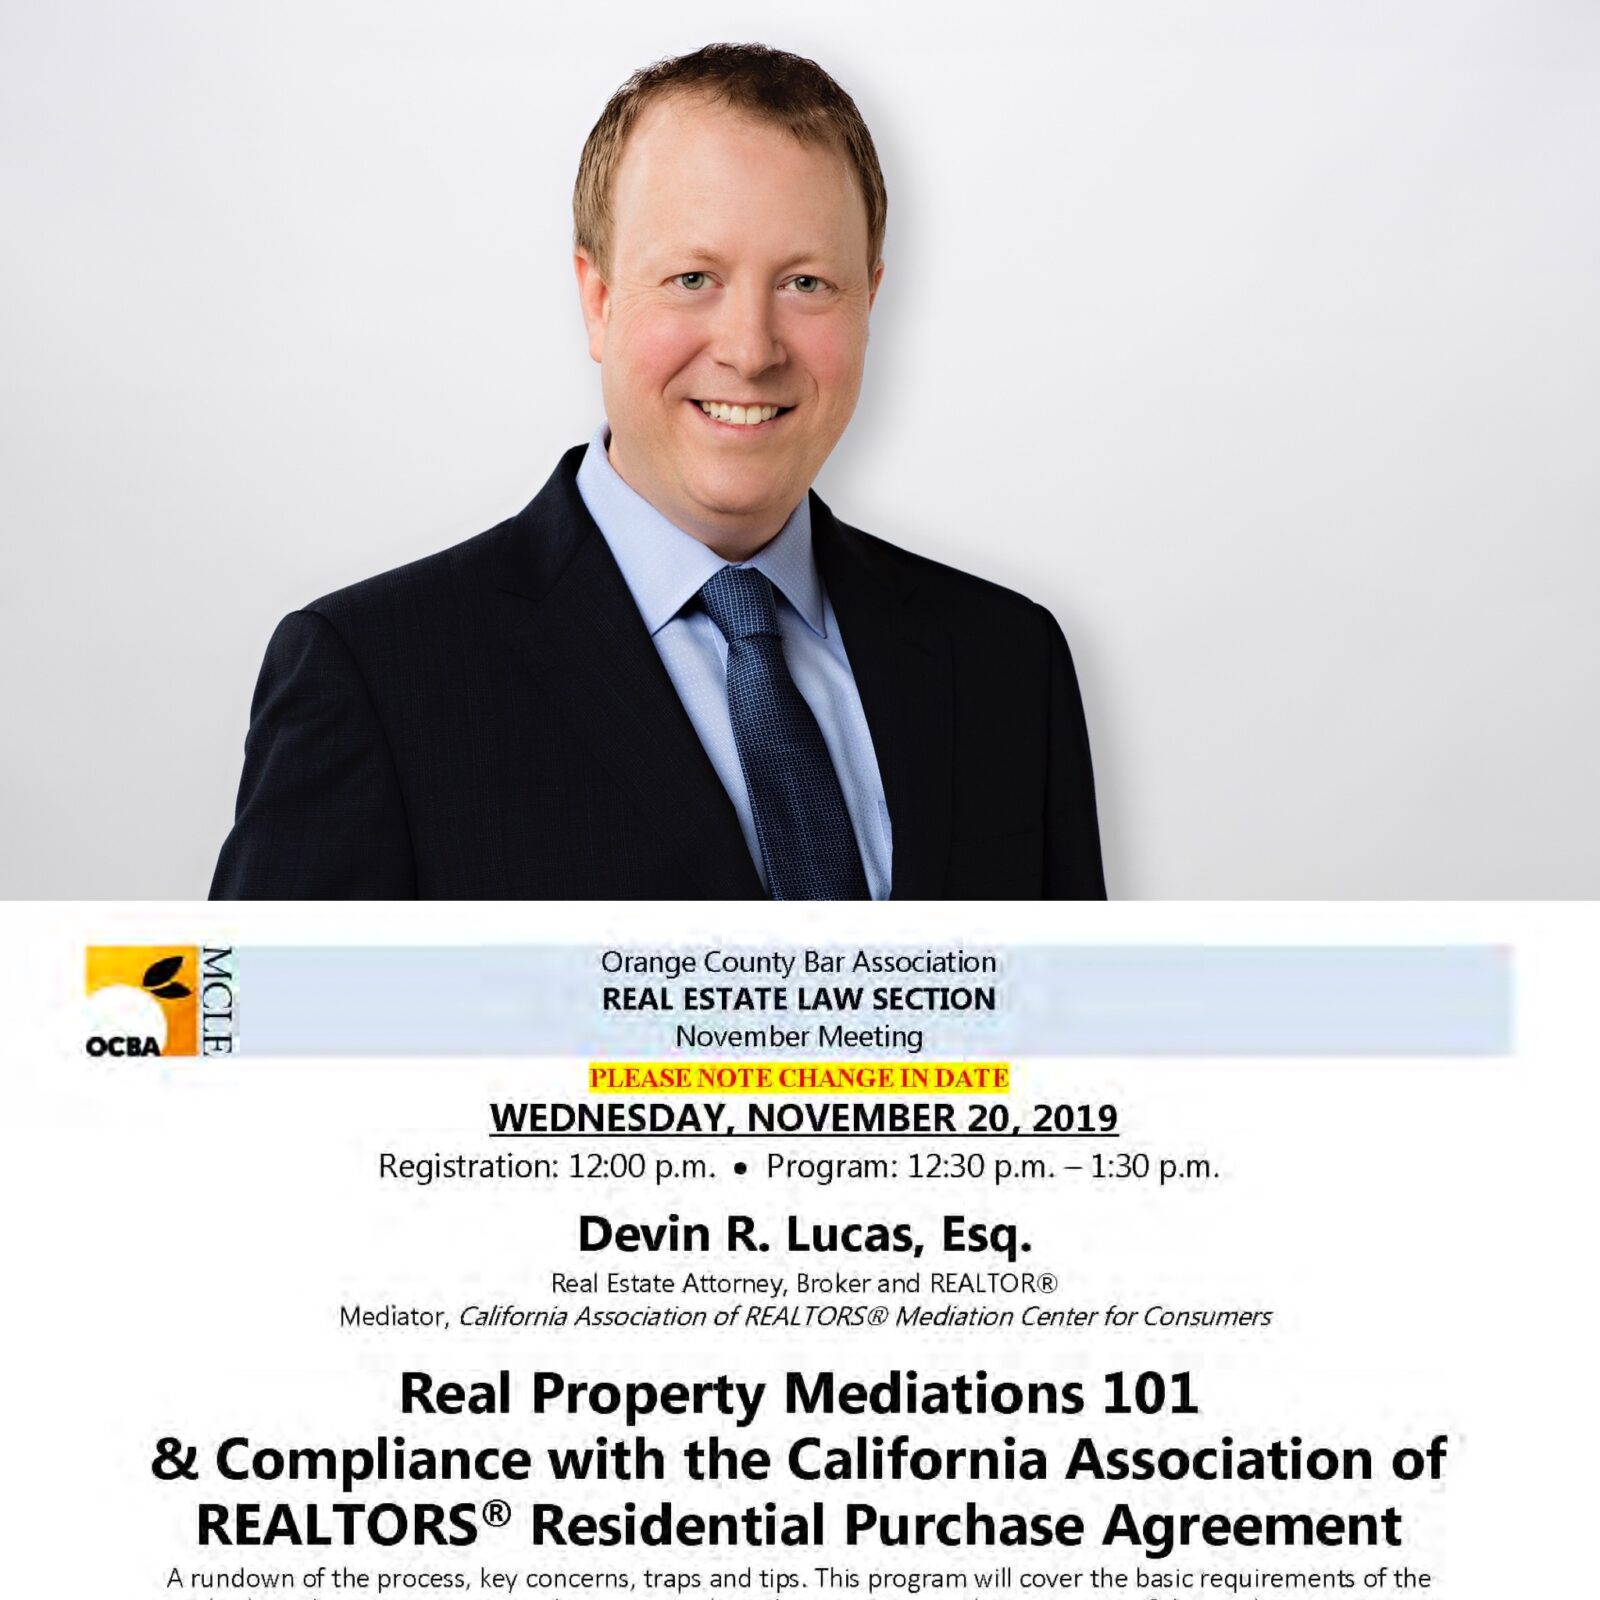 Lucas presents to the Orange County Bar Association on Real Estate Mediations